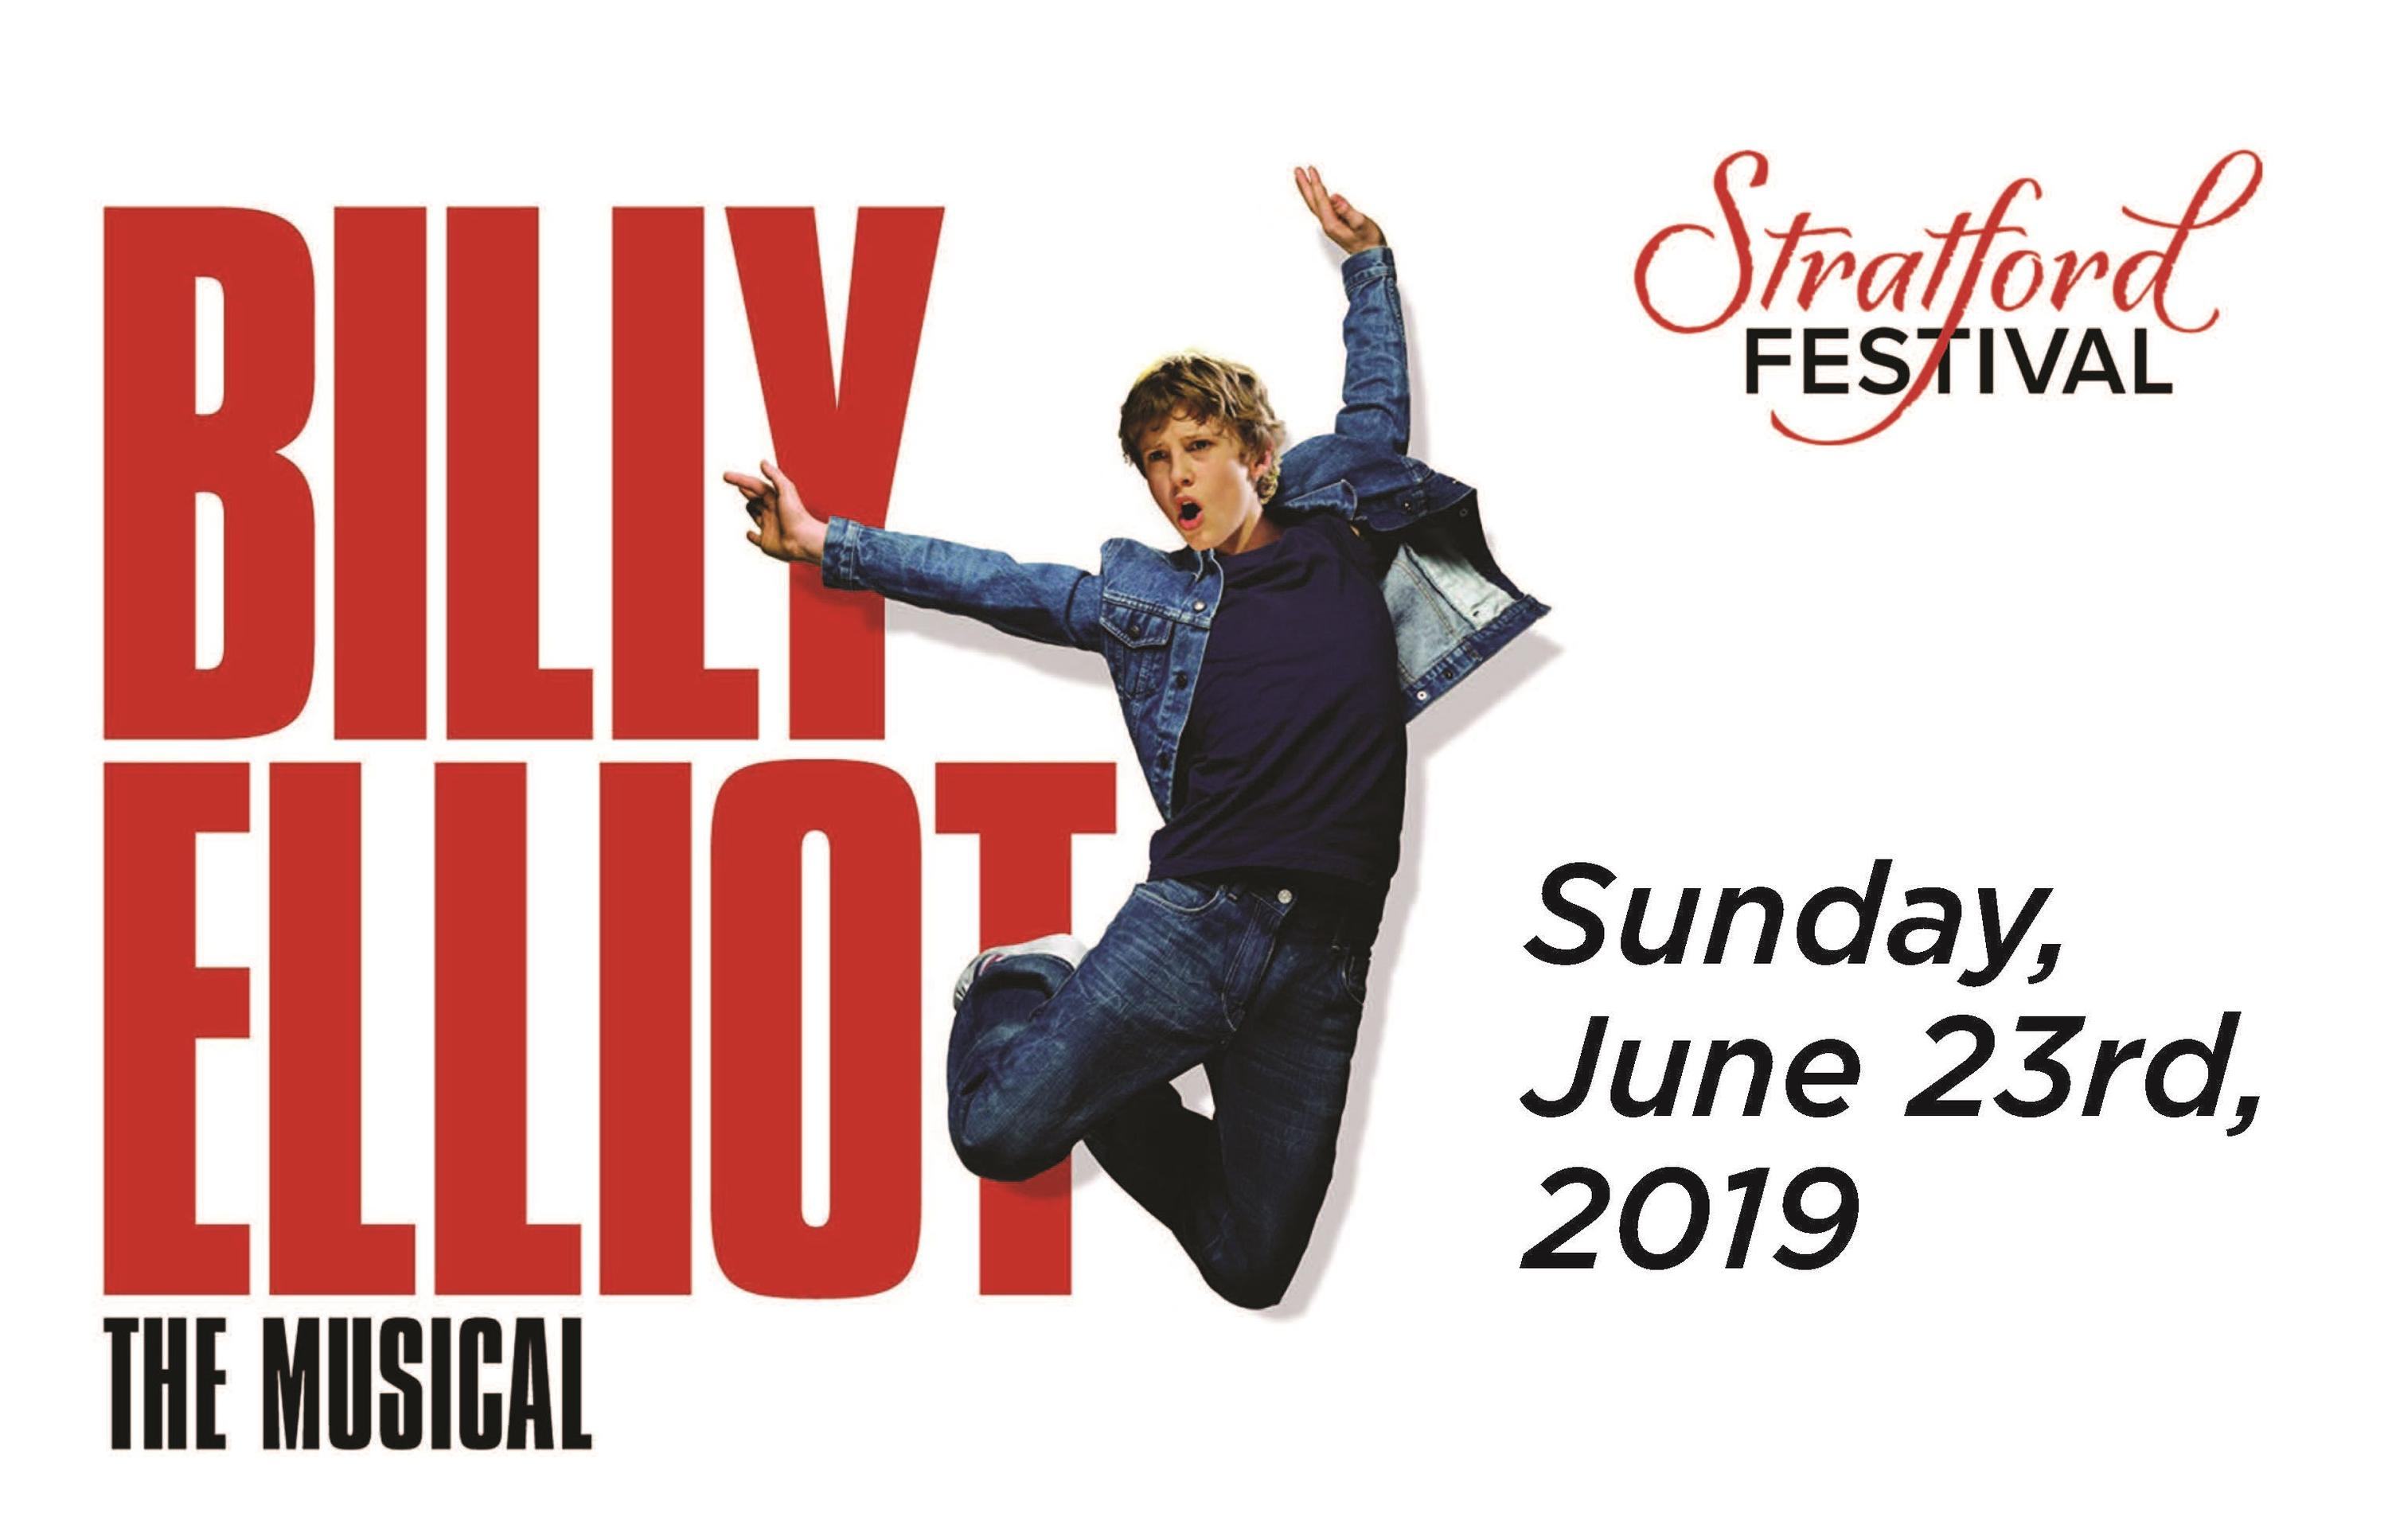 Billy Elliot, the musical. Stratford Festival. Sunday, July 23rd 2019. Image of Billy Elliot, a young boy jumping.